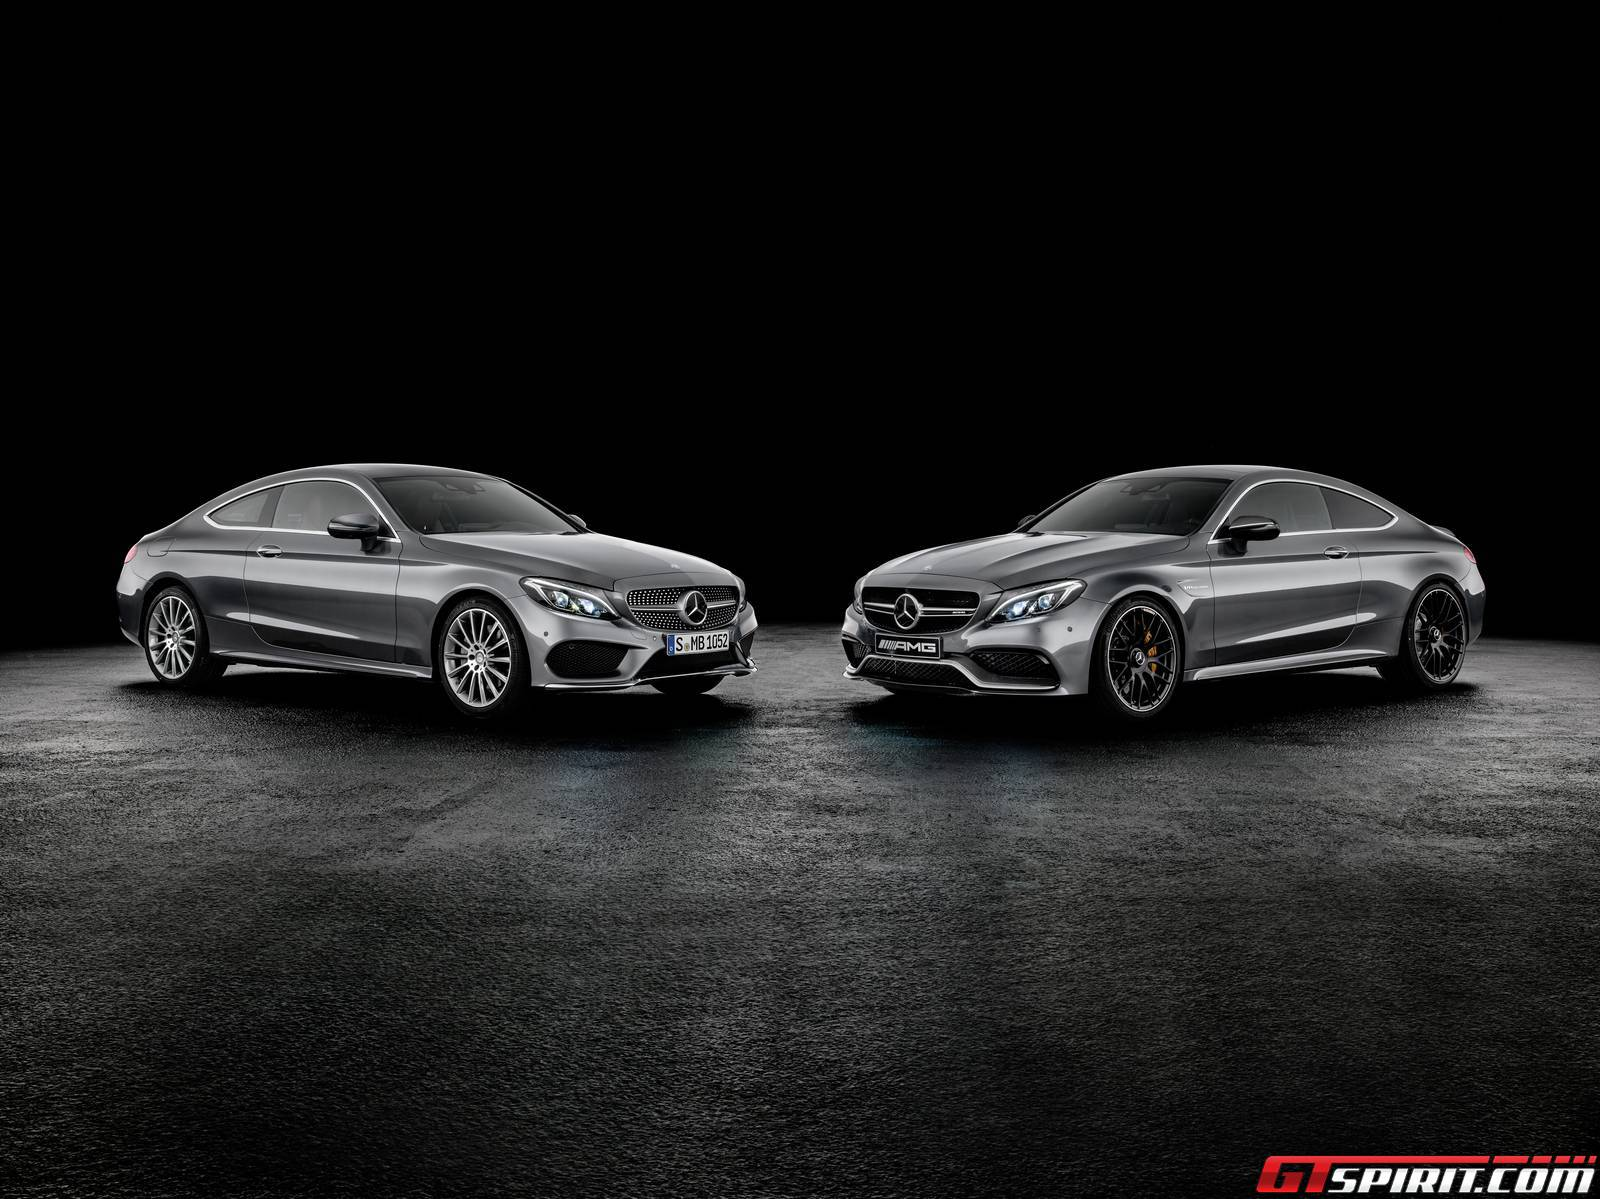 2016 Mercedes-Benz C-Class Coupe Revealed